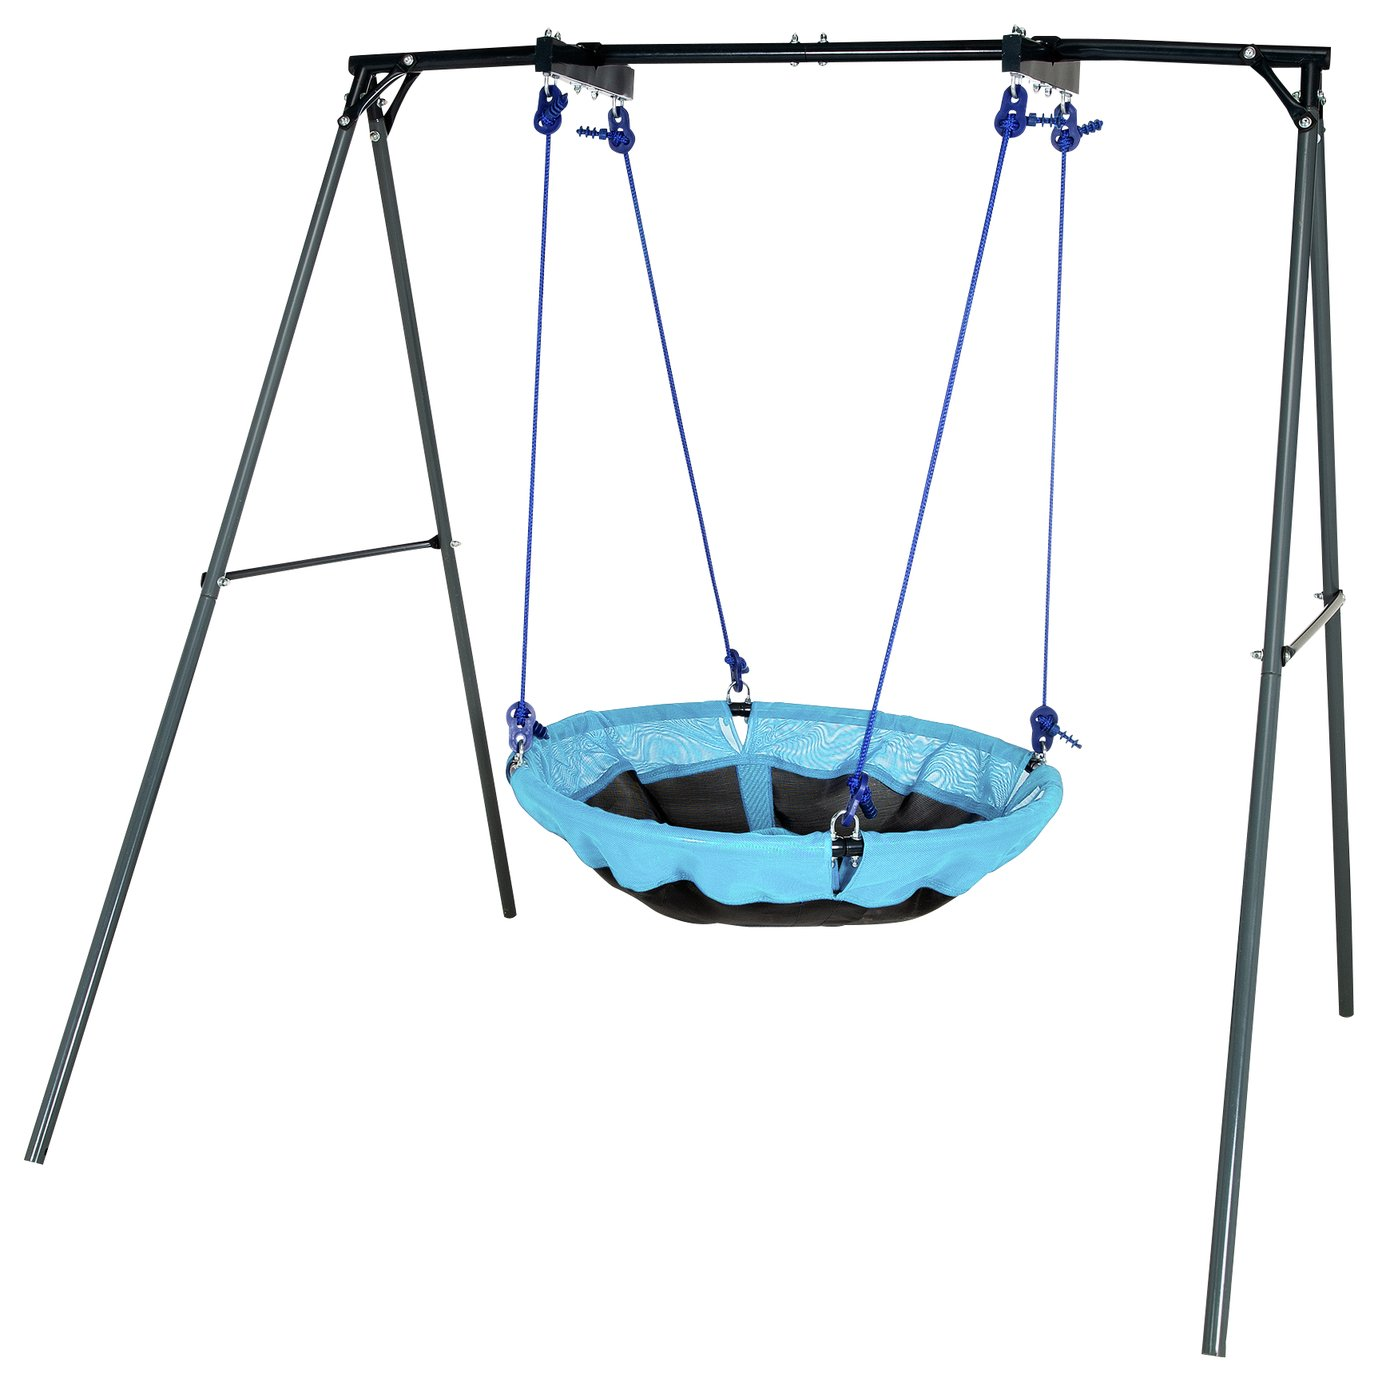 Chad Valley Saucer Swing review